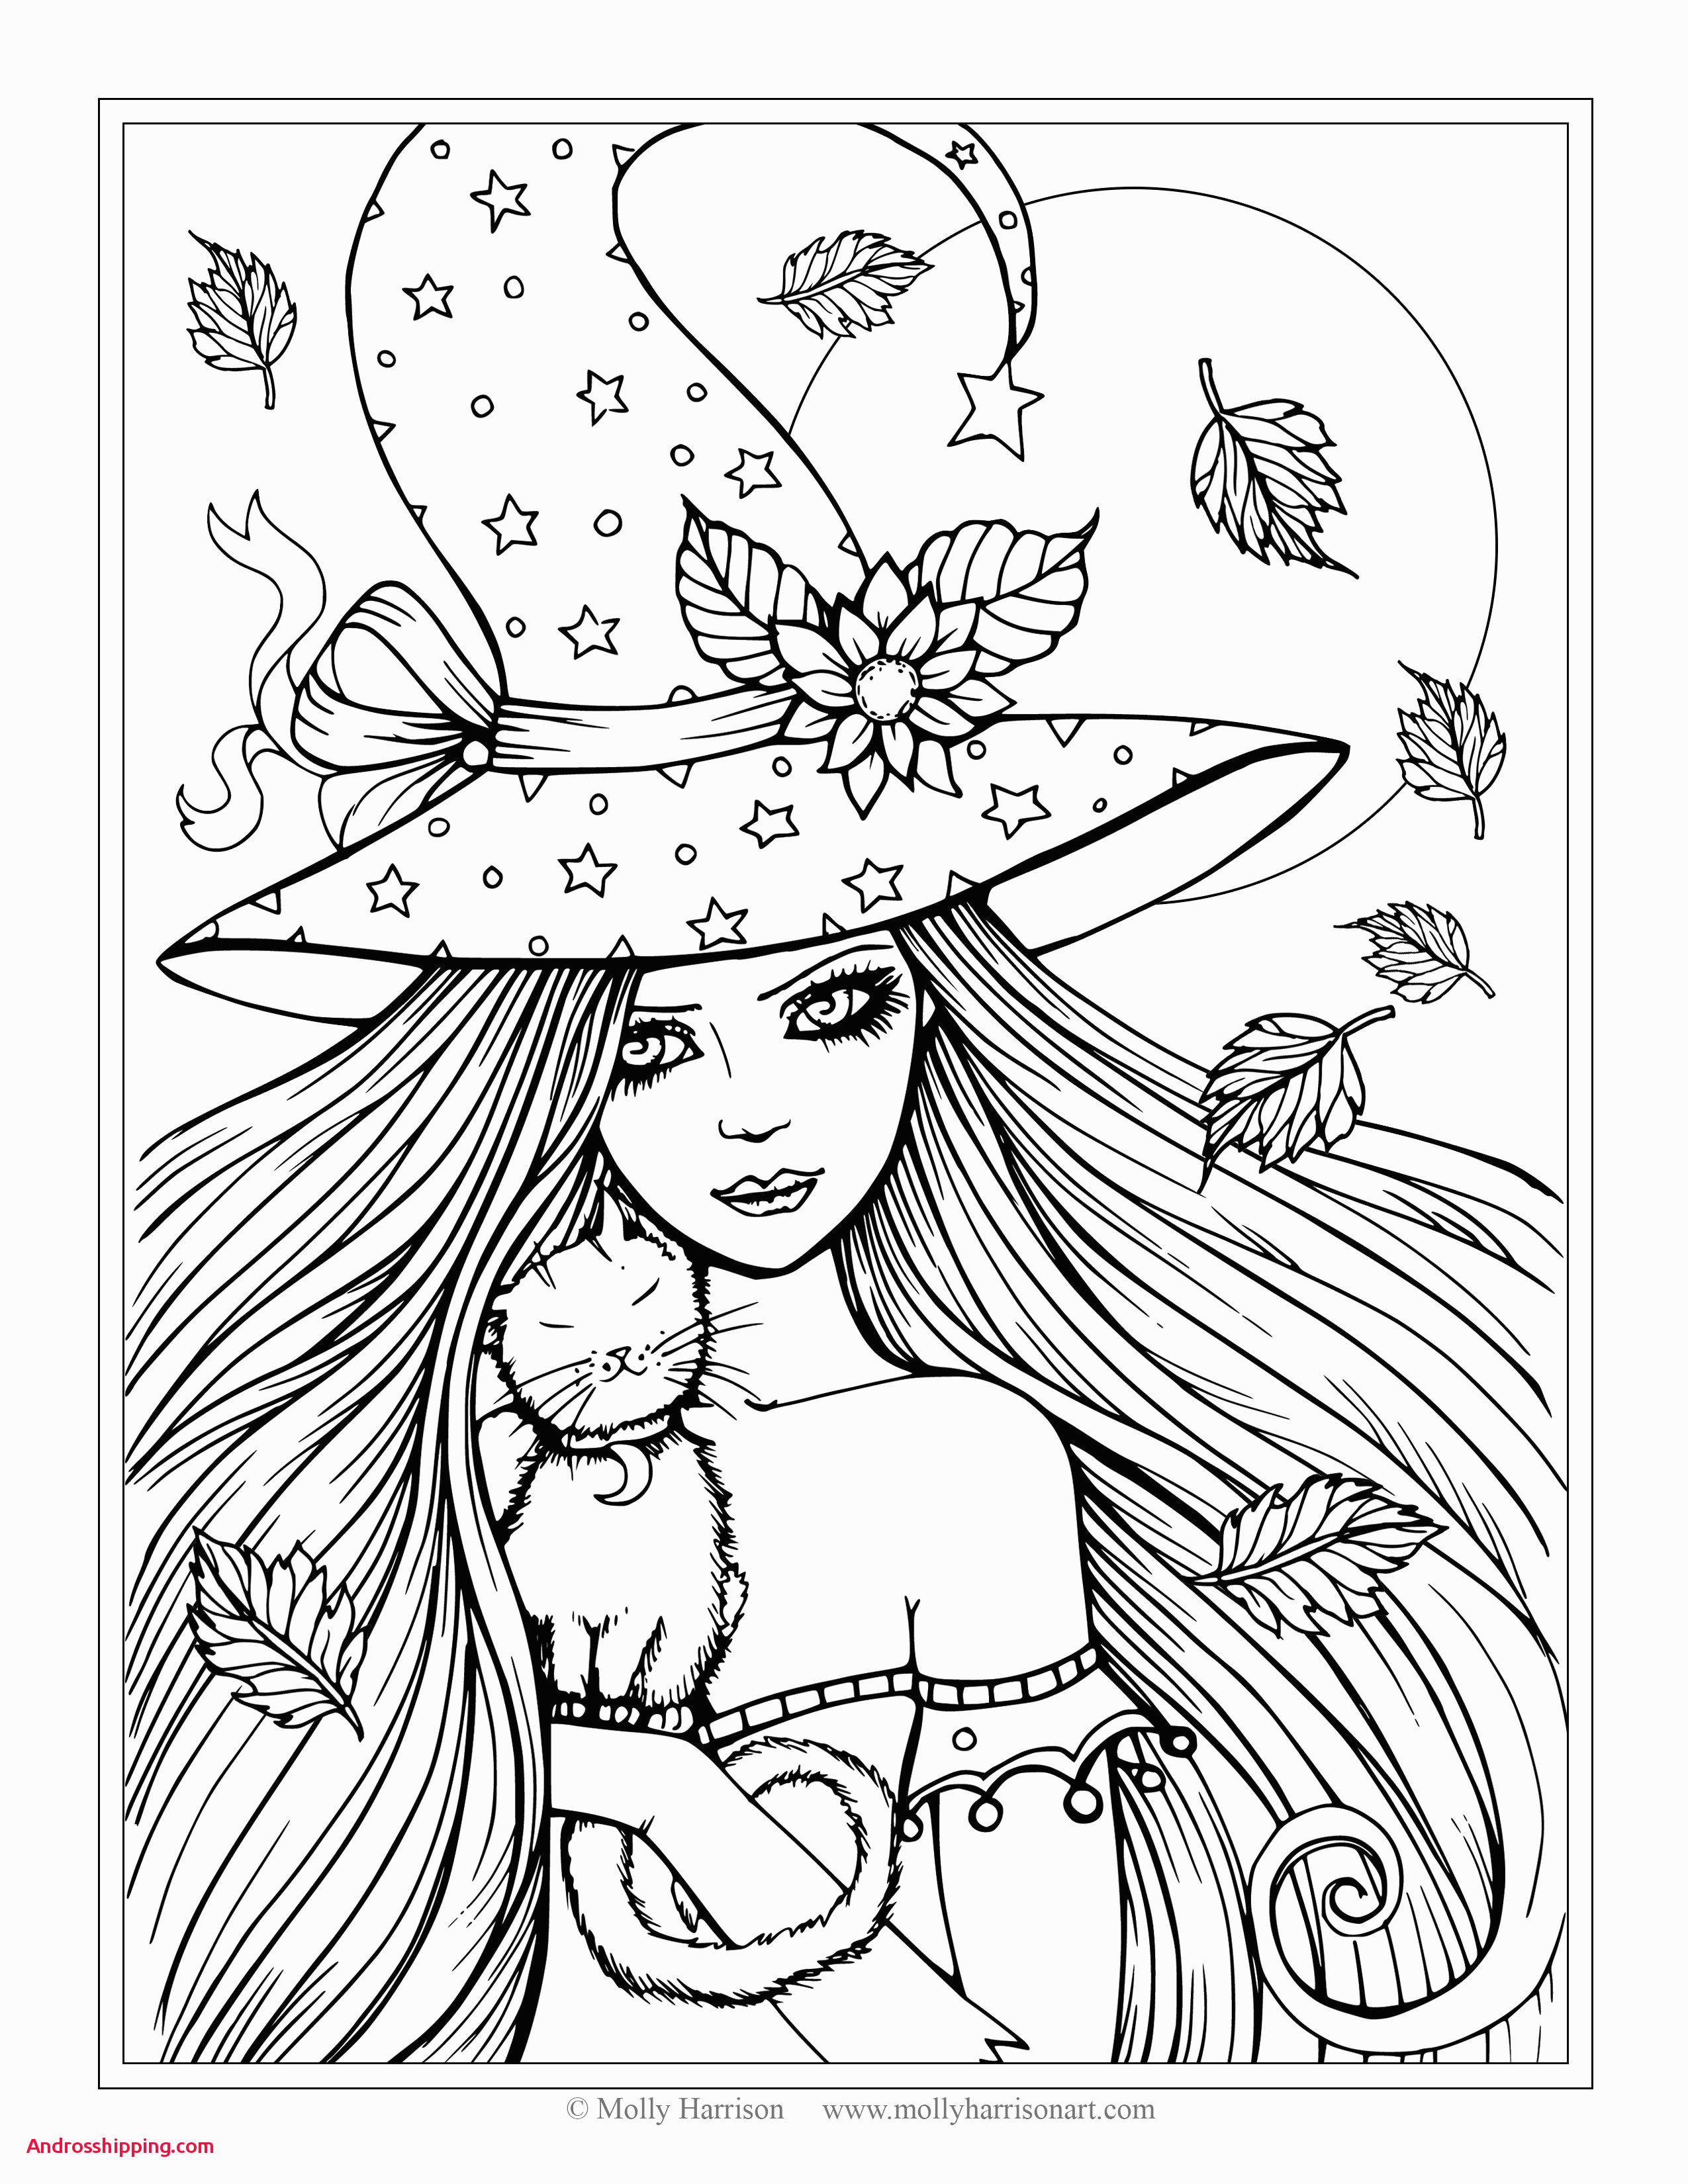 Printable Mitten Coloring Page 10 Beautiful Printable Mitten Coloring Page Androsshipping